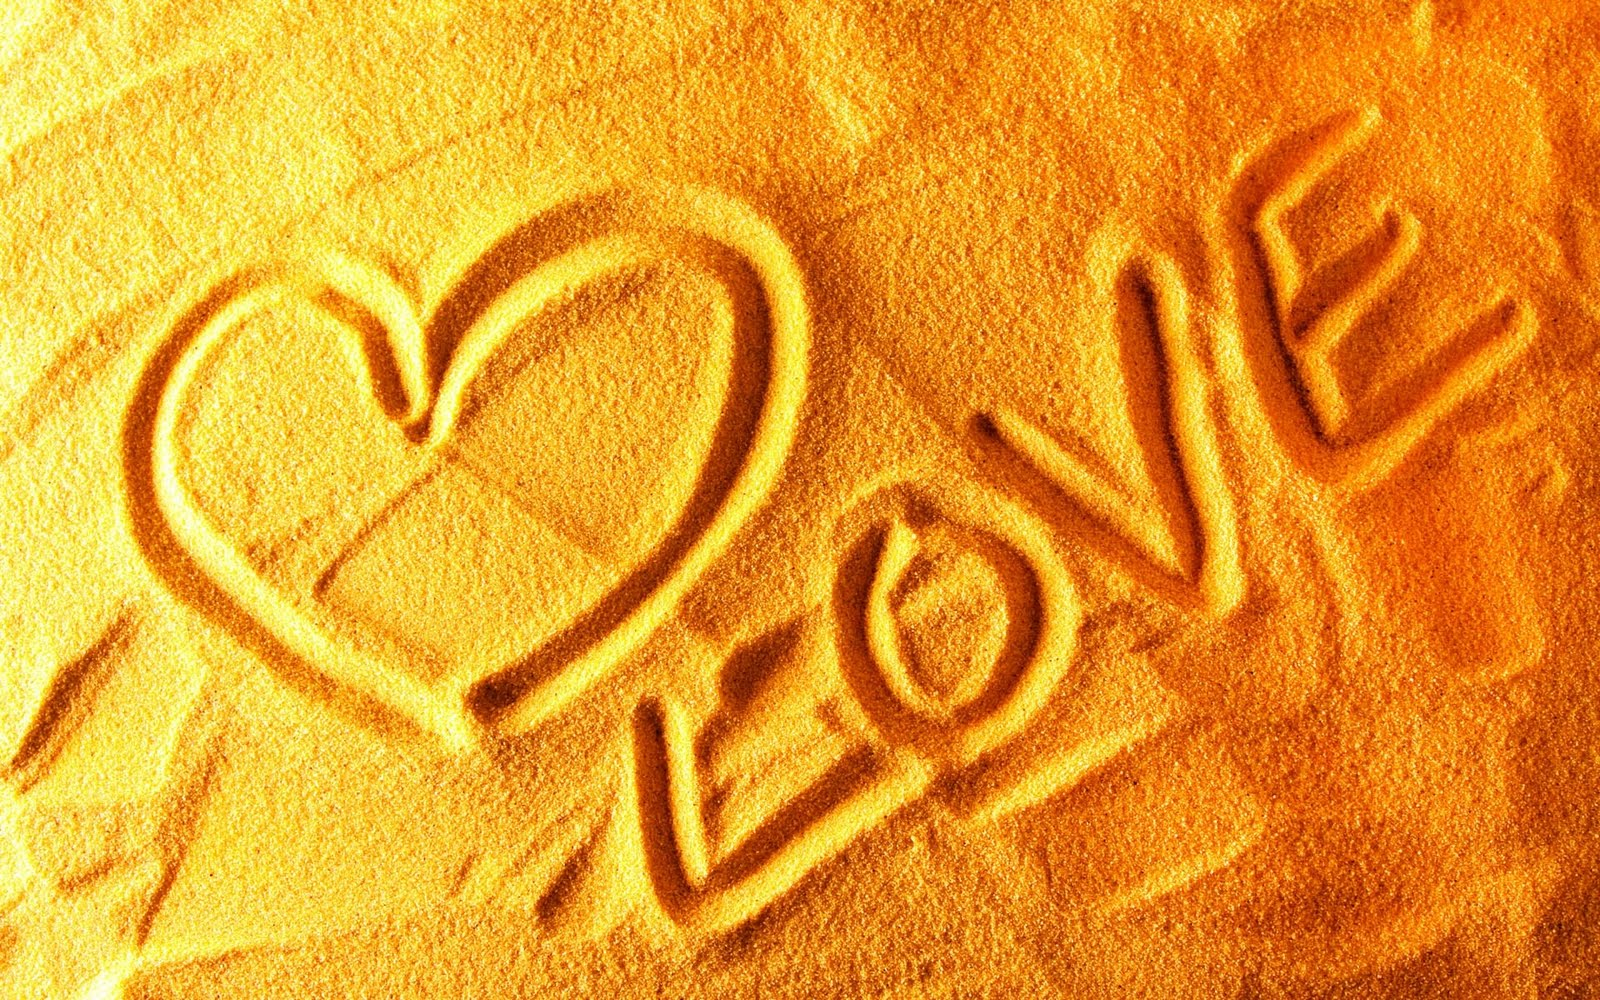 Love Sand Widescreen HD Wallpaper Hd Wallpaper